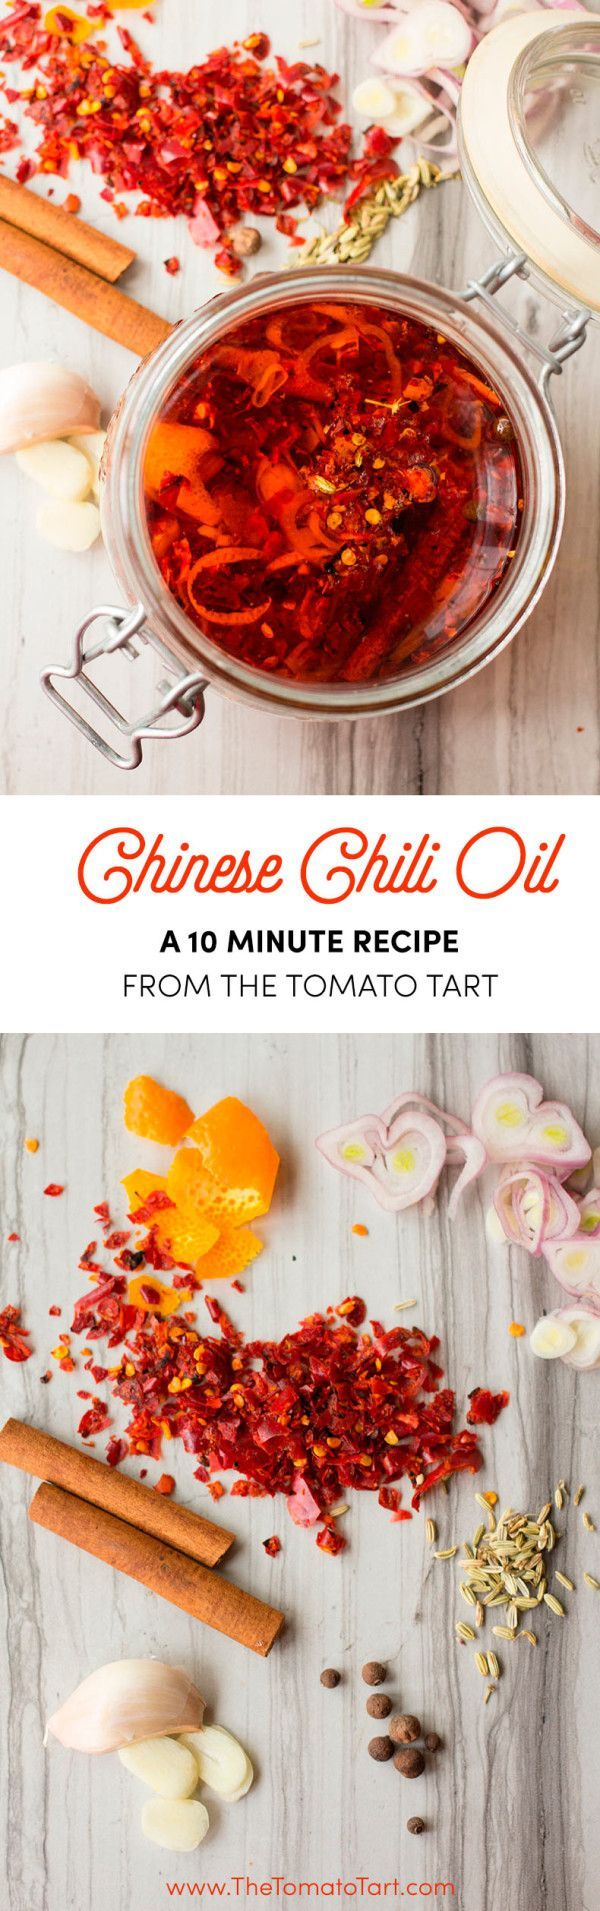 Homemade Chinese Chili Oil. Way better than the store bought stuff!